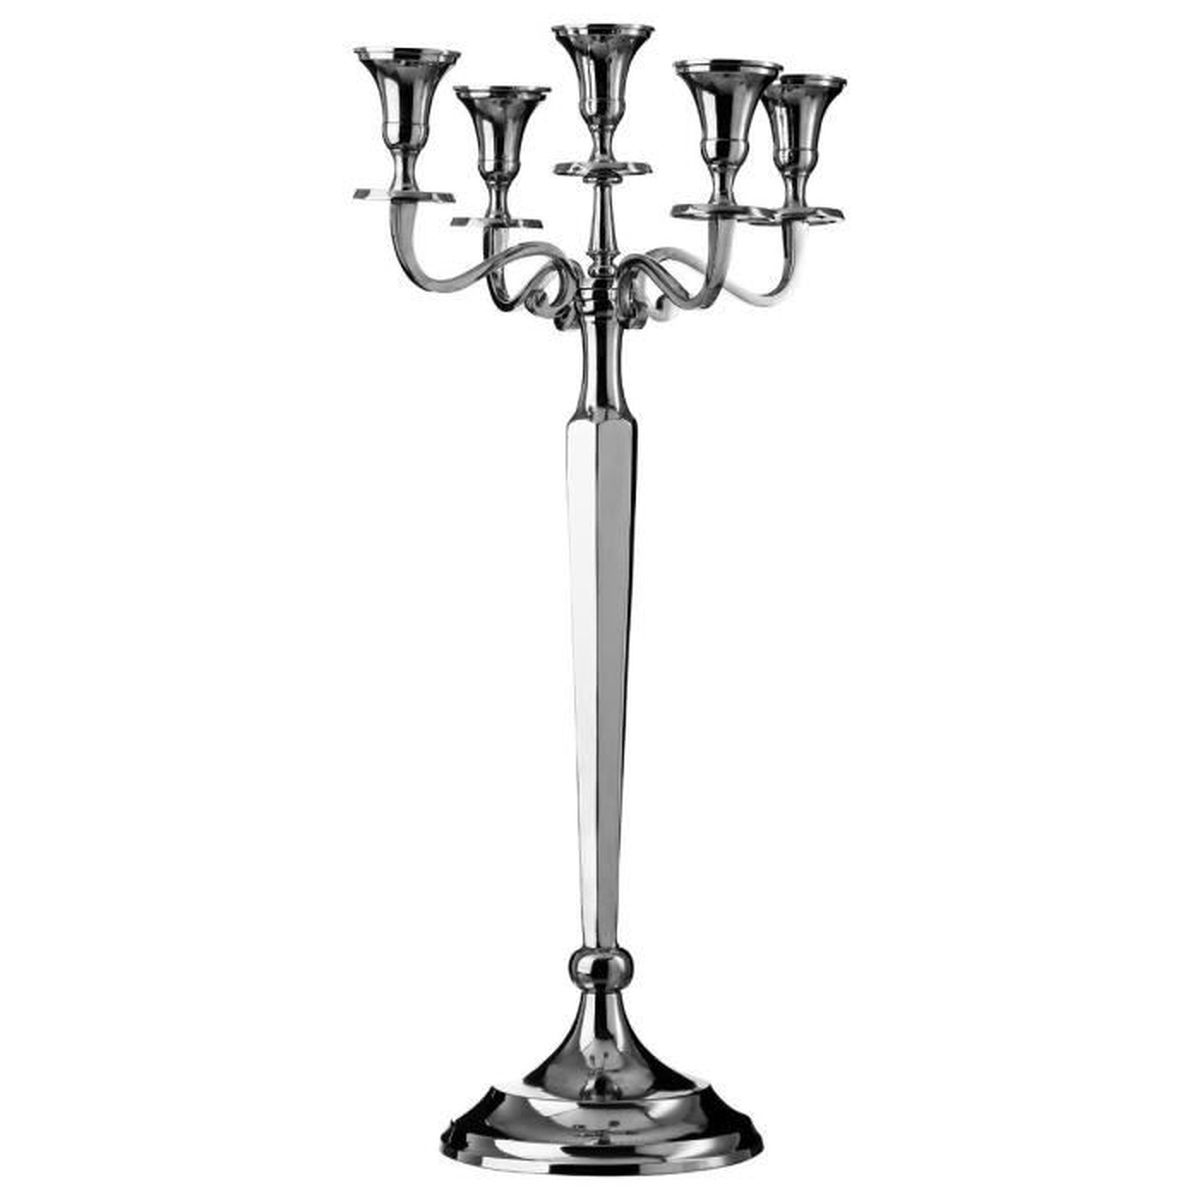 grand bougeoir chandelier 5 branches en aluminium hauteur 88 cm achat vente bougeoir. Black Bedroom Furniture Sets. Home Design Ideas